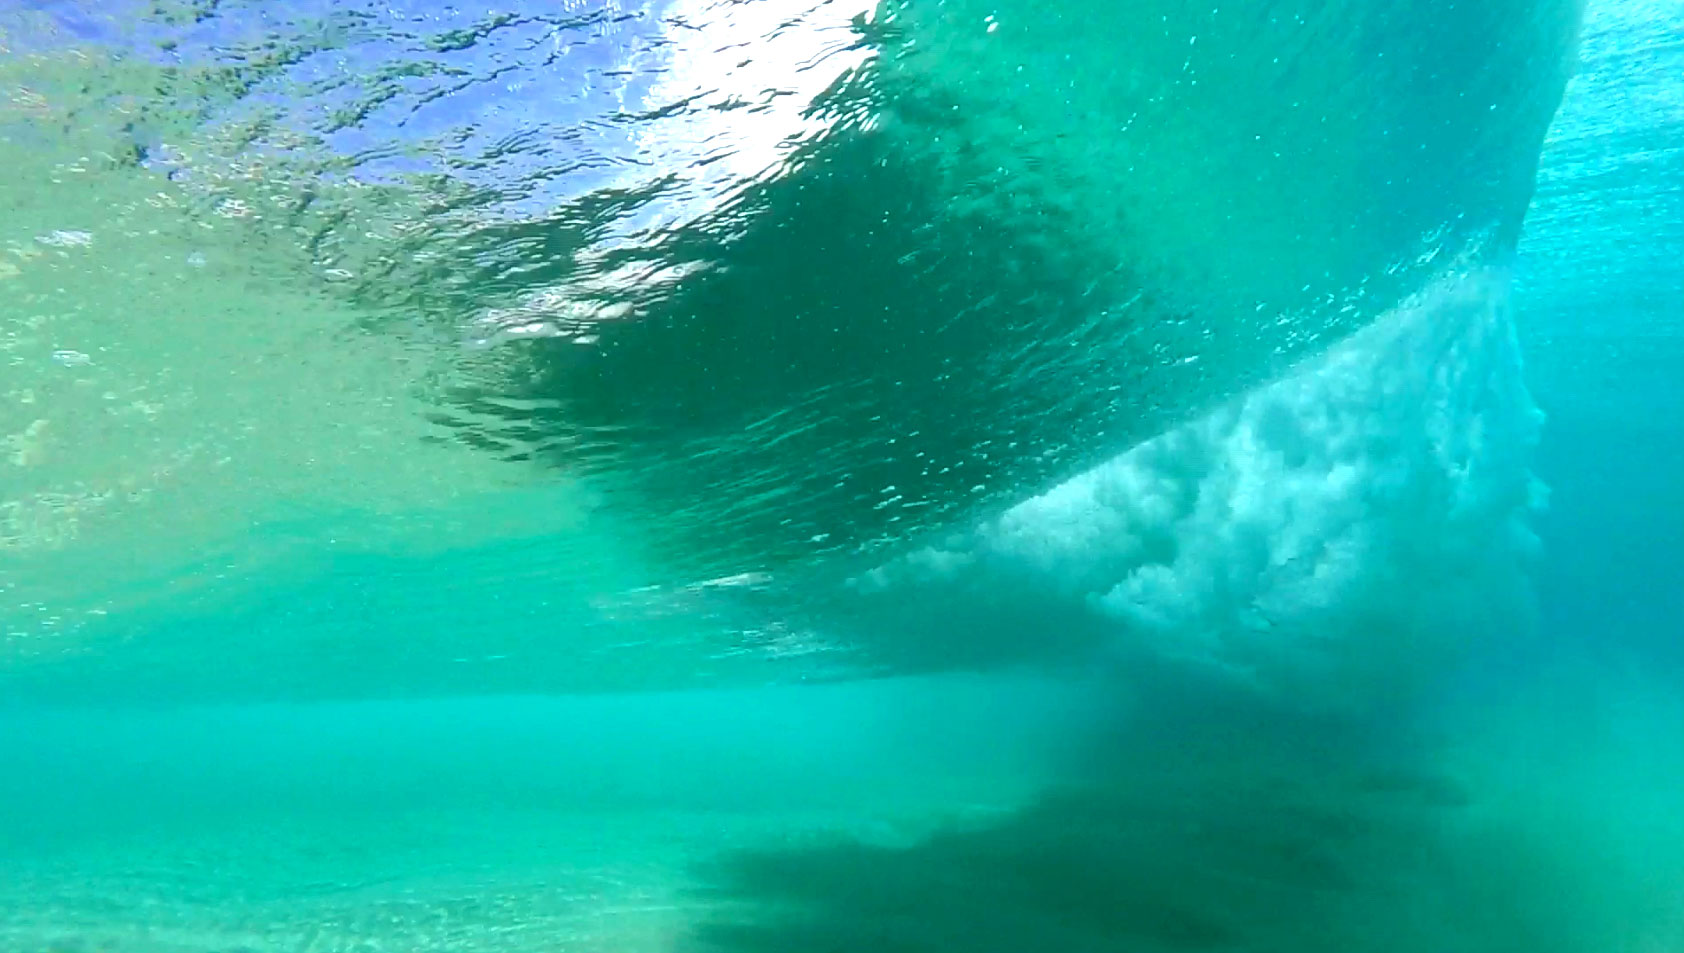 learn to surf: how to read the waves